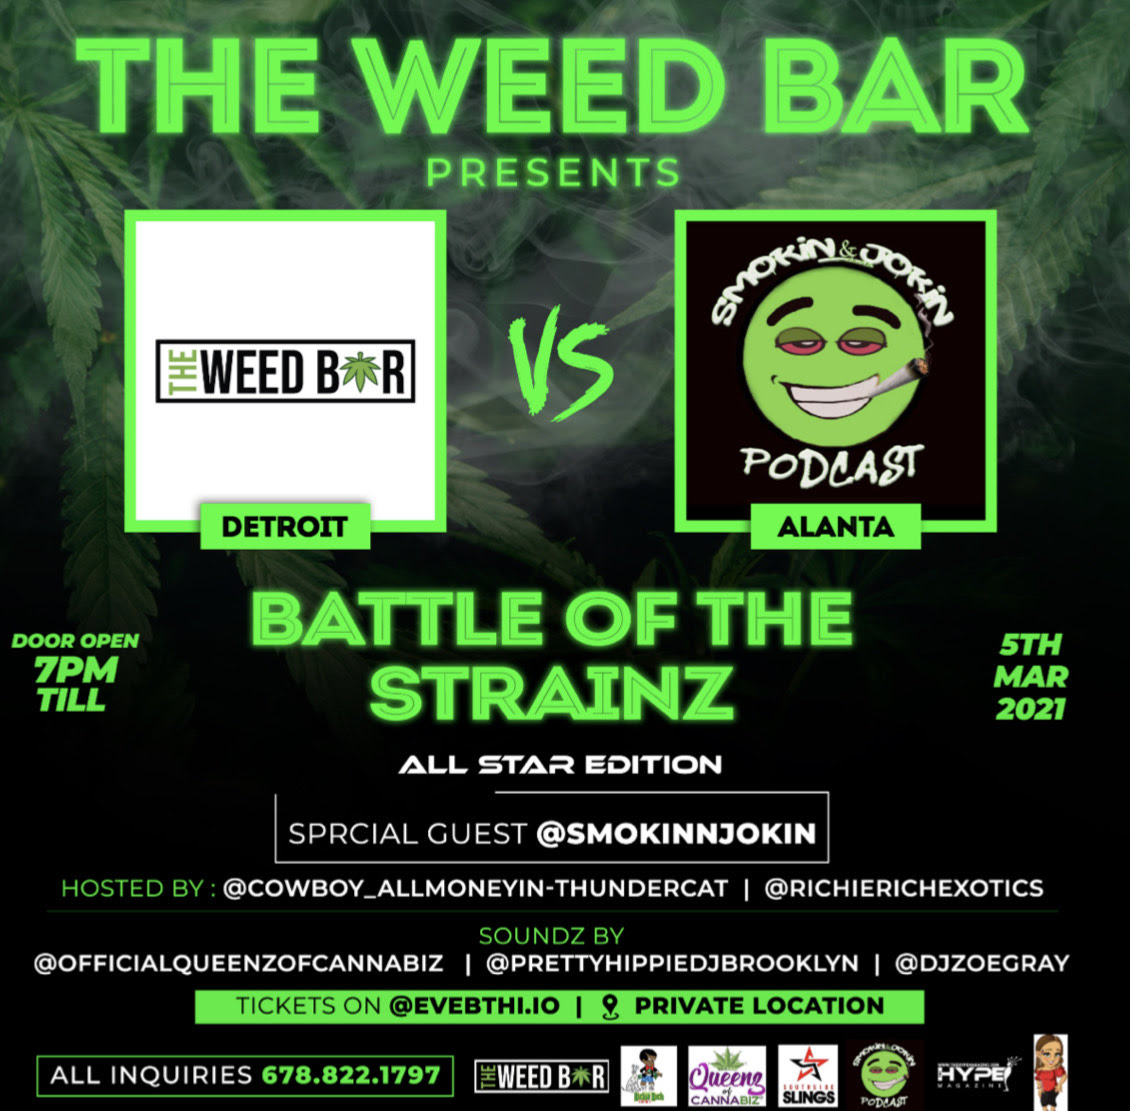 Battle of the Strainz All Star Edition